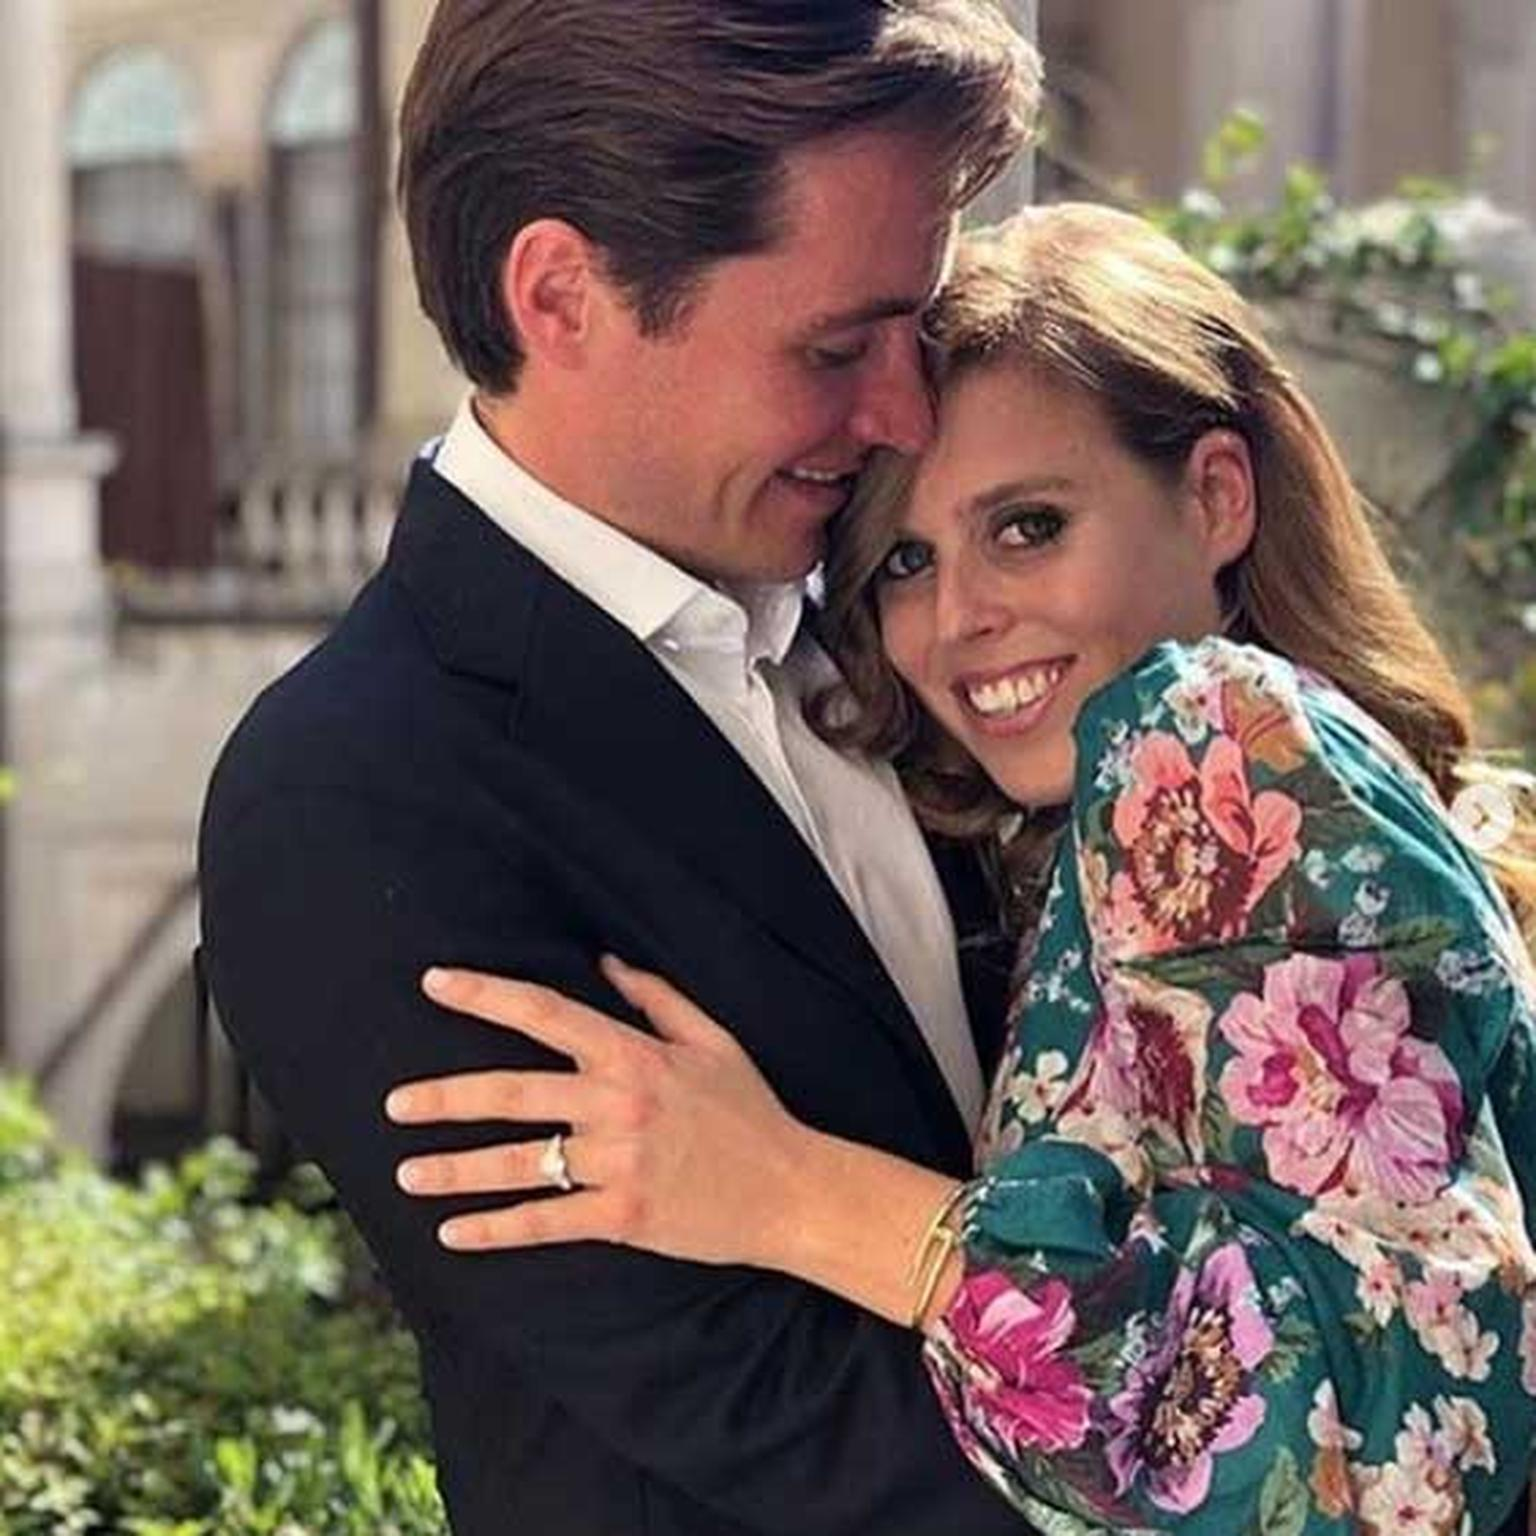 Princess Beatrice and Edoardo Mapelli Mozzi engagement